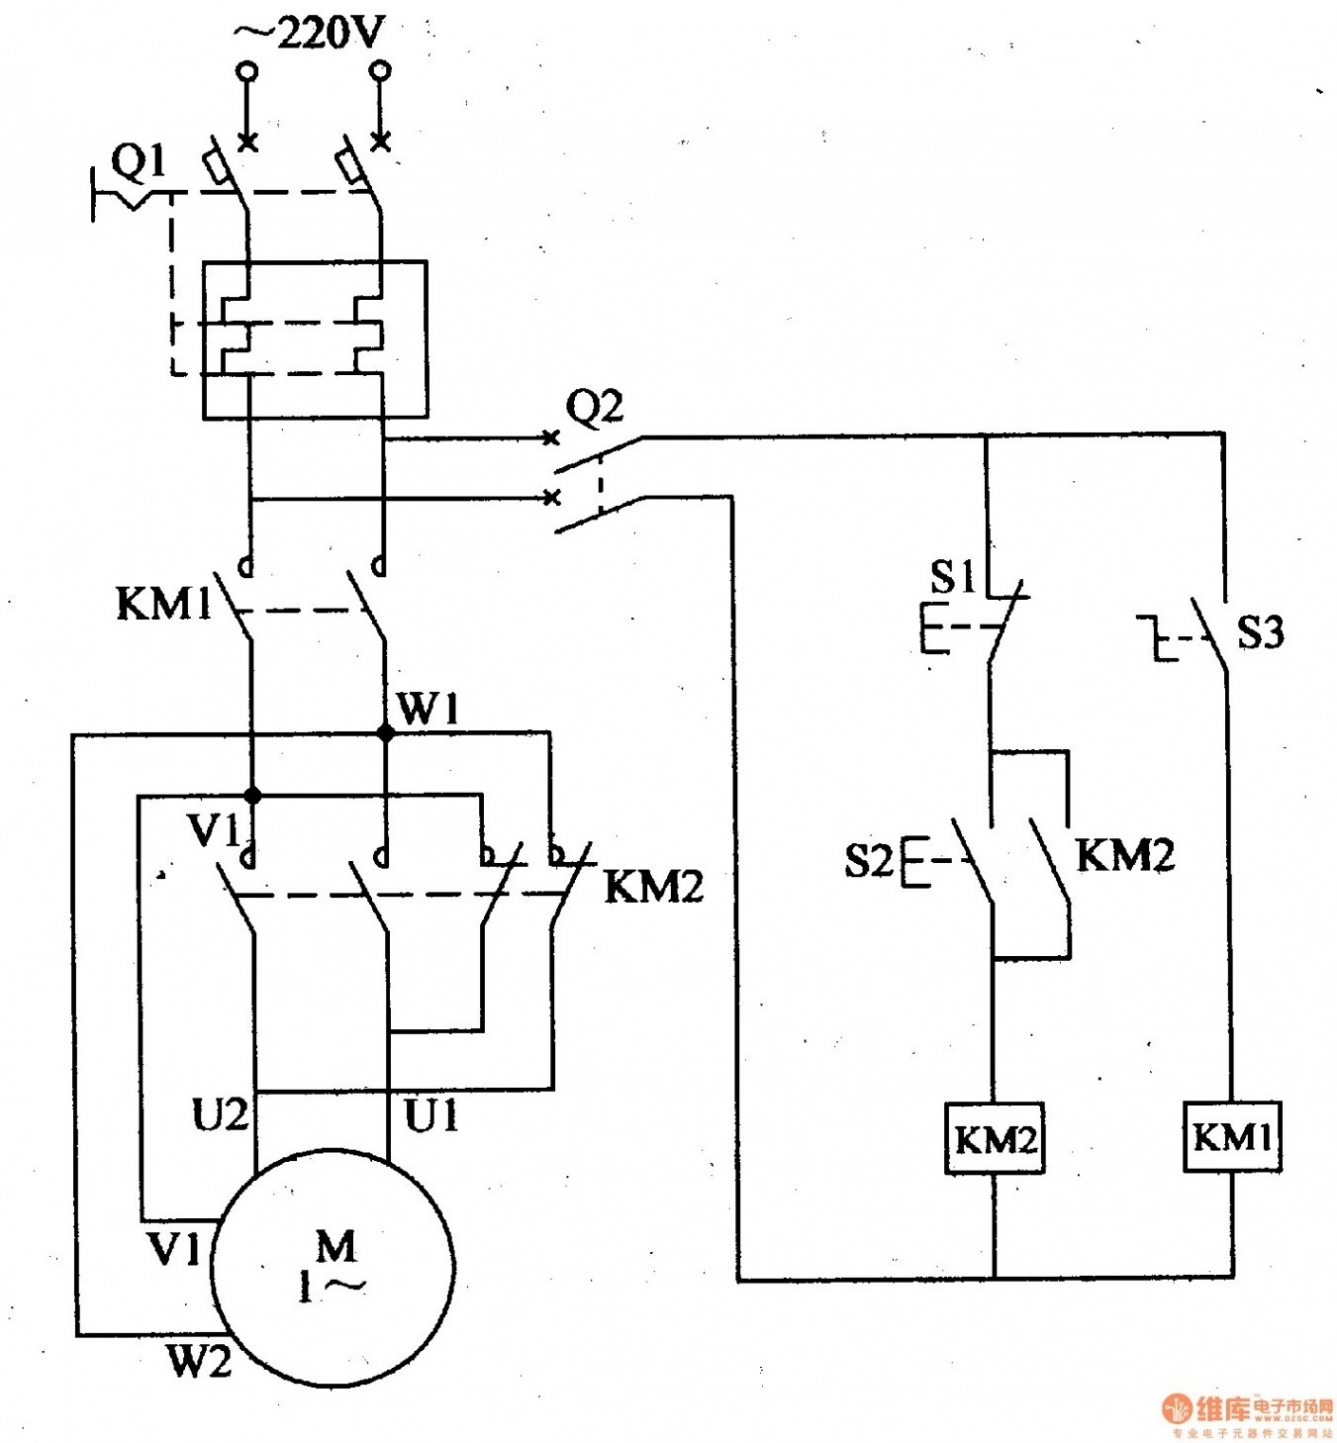 3 speed fan wiring diagram ac